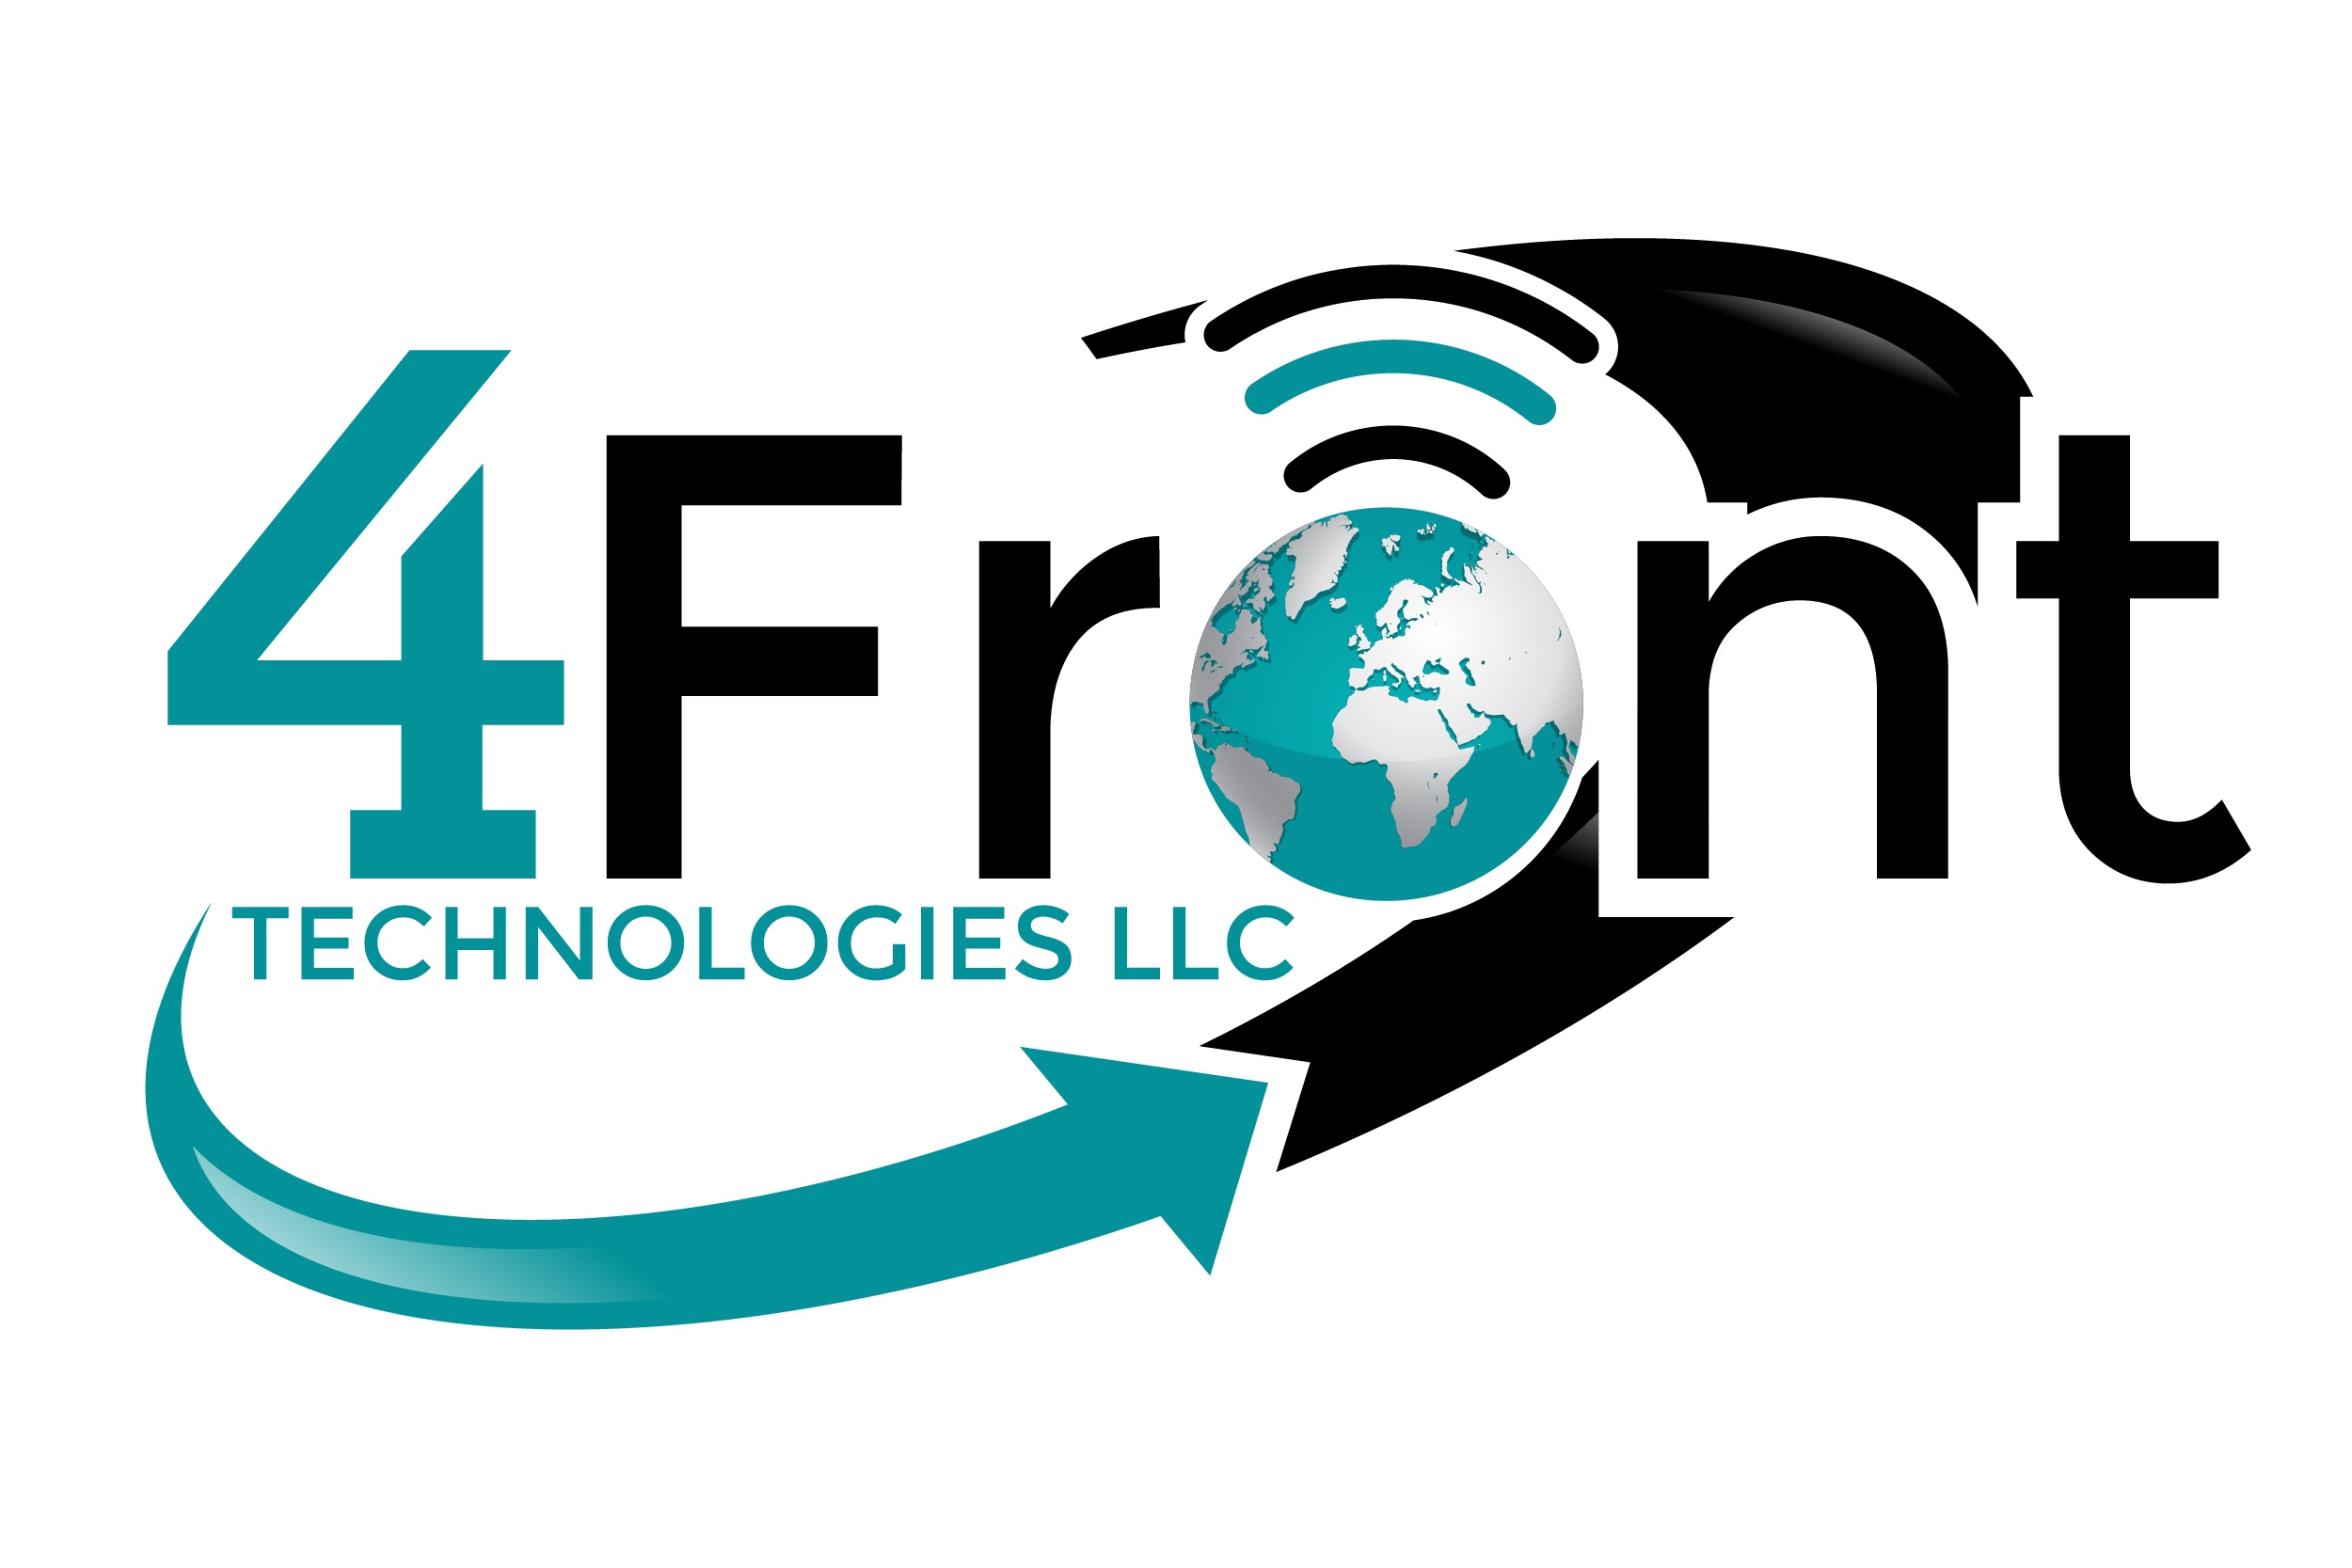 4Front Technologies